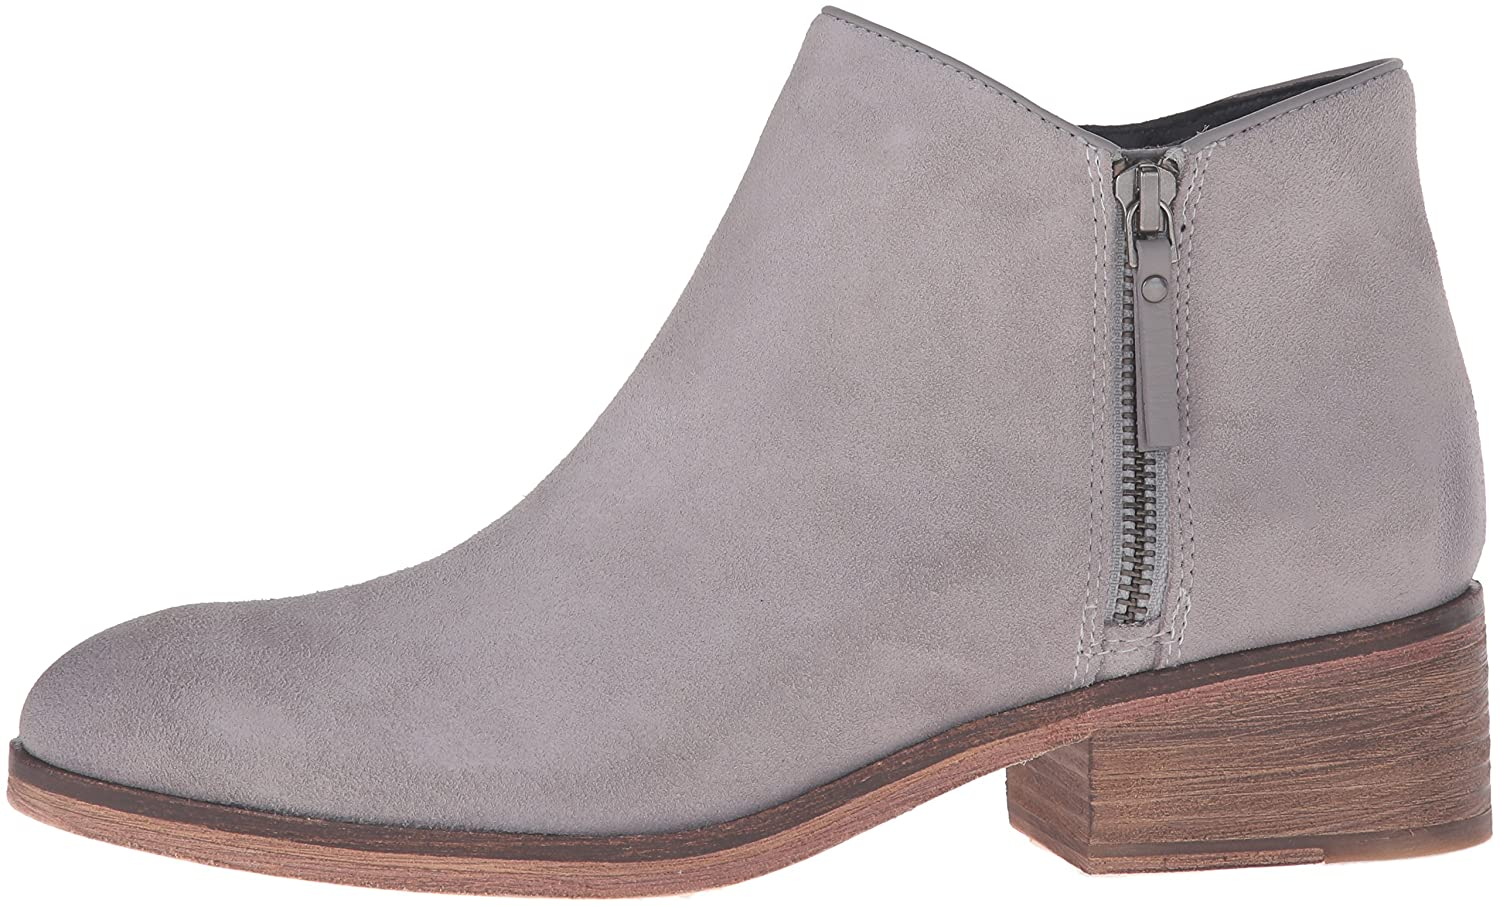 Cole Ankle Haan Women's Hayes Flat Ankle Cole Bootie B01FX6Z8YI 8.5 B(M) US Ironstone Suede 868661